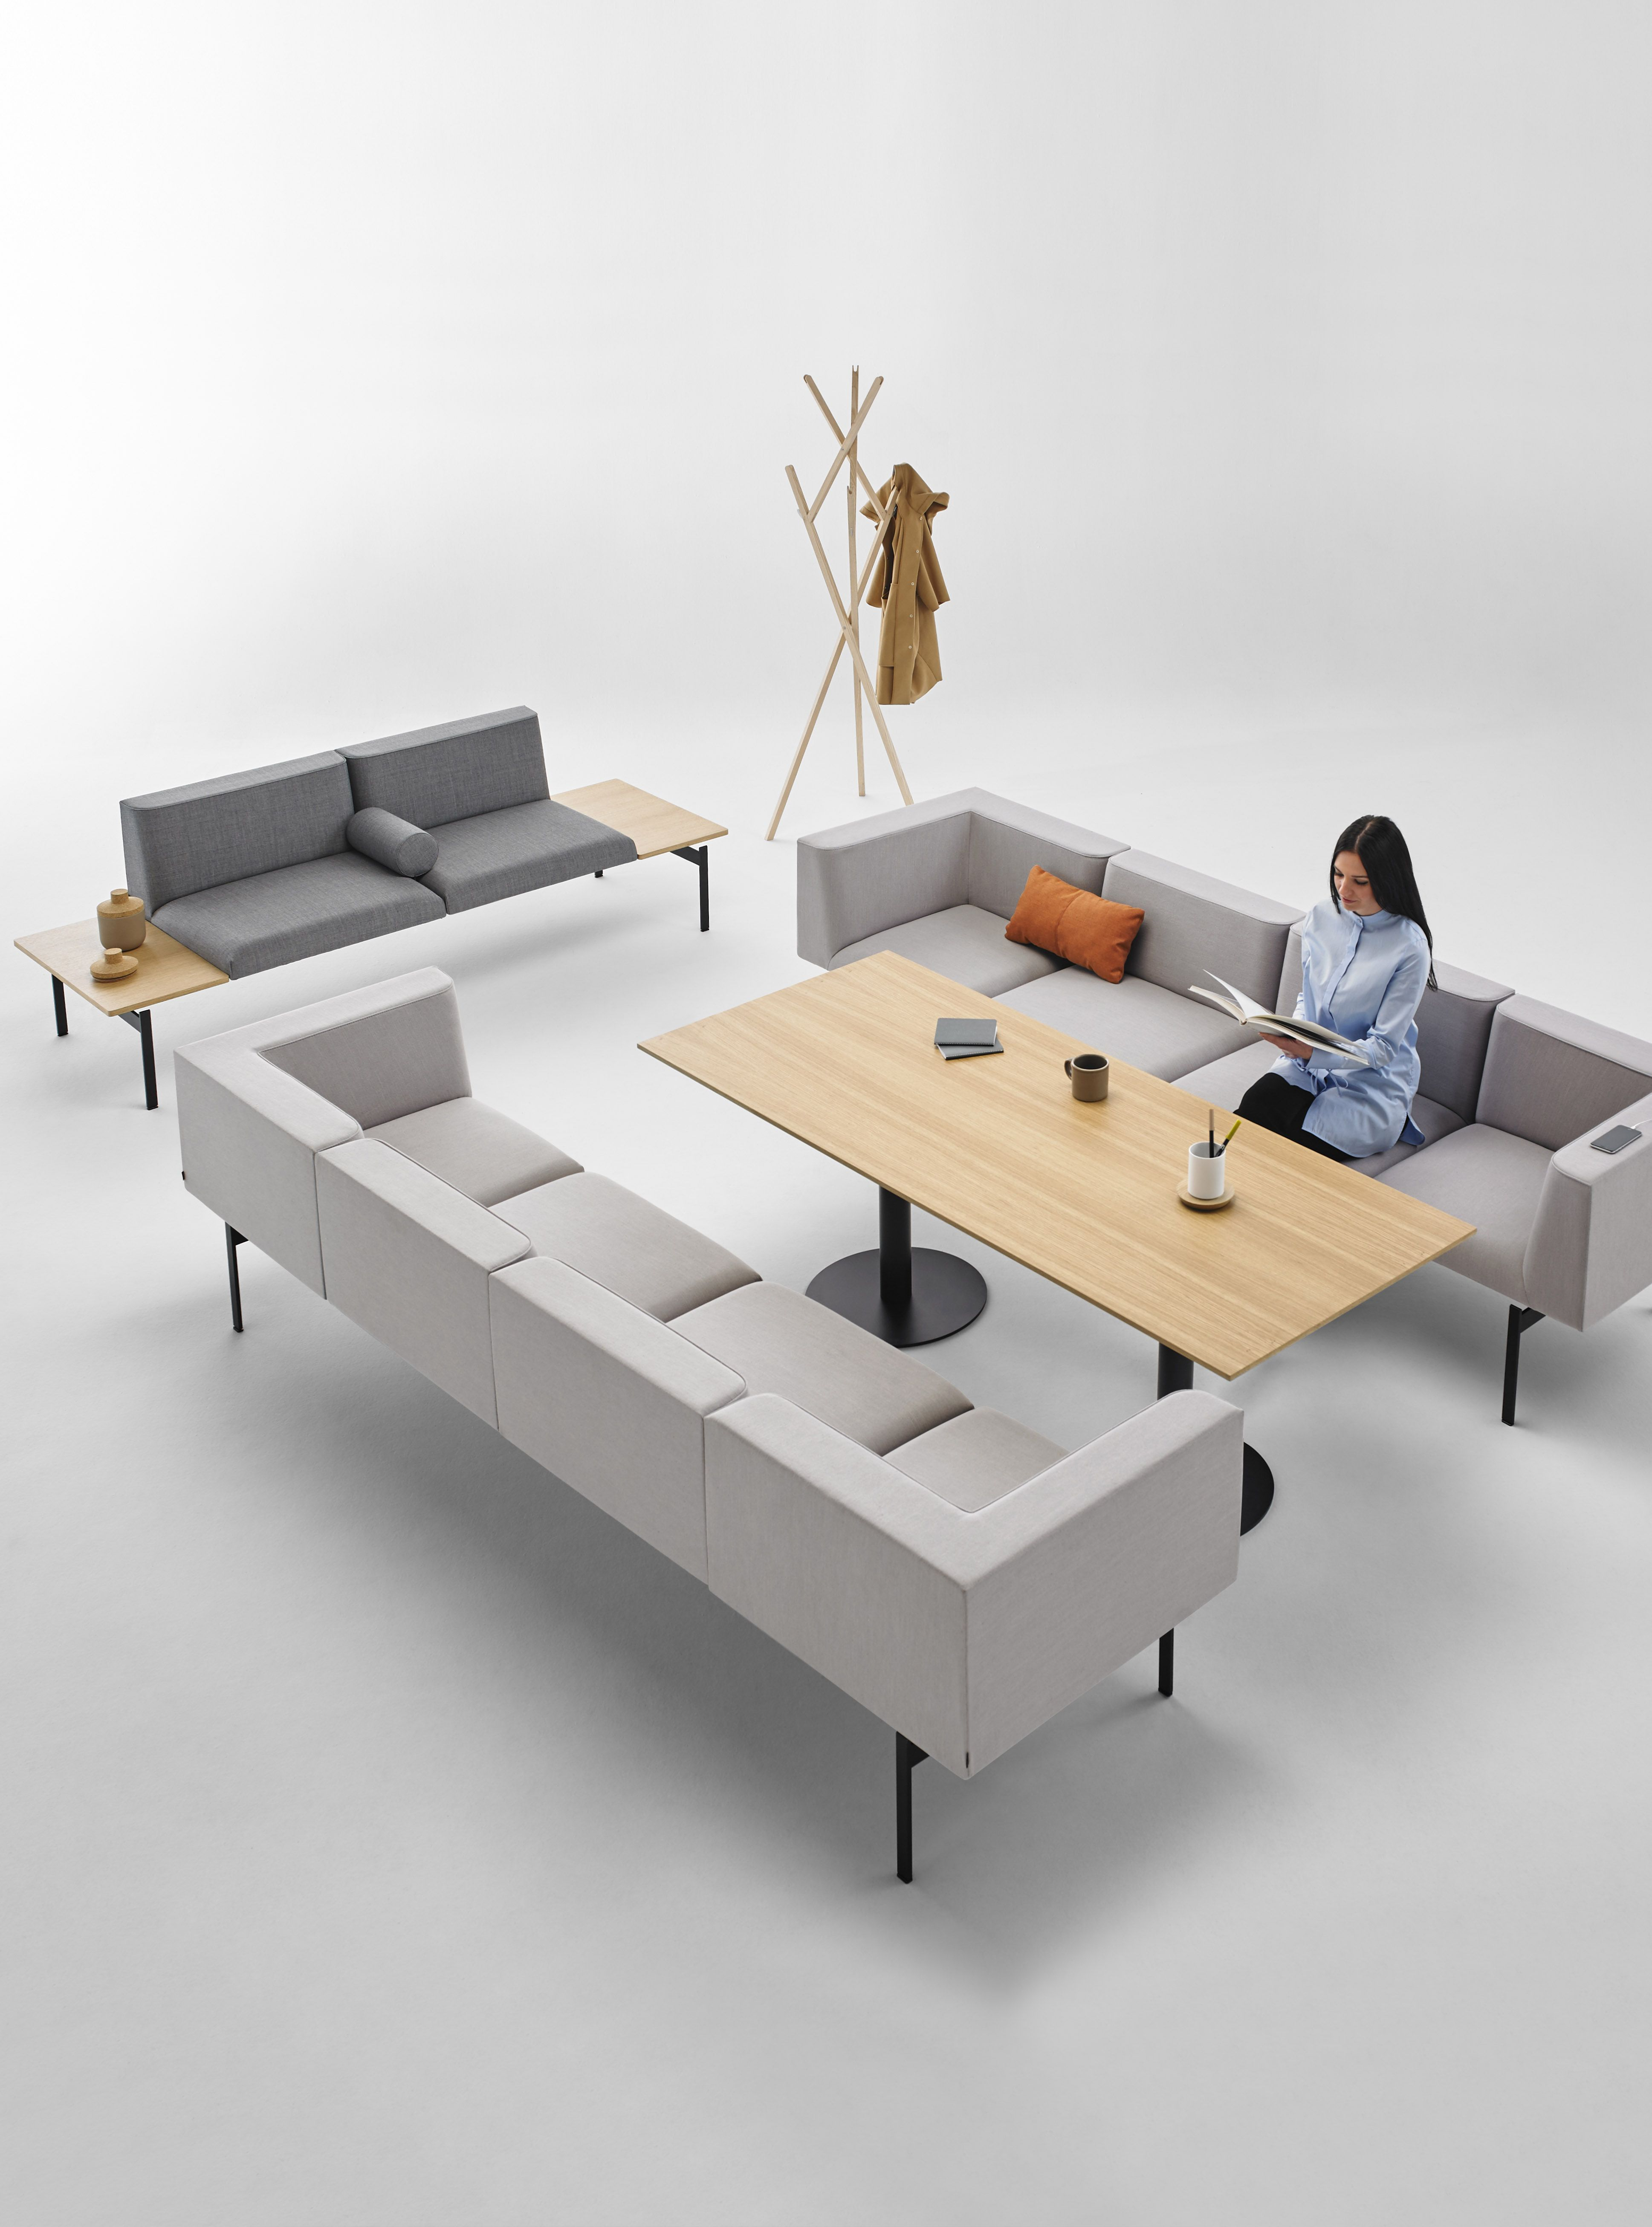 Lapse Modular Seating System In Gray Designed By Carlos